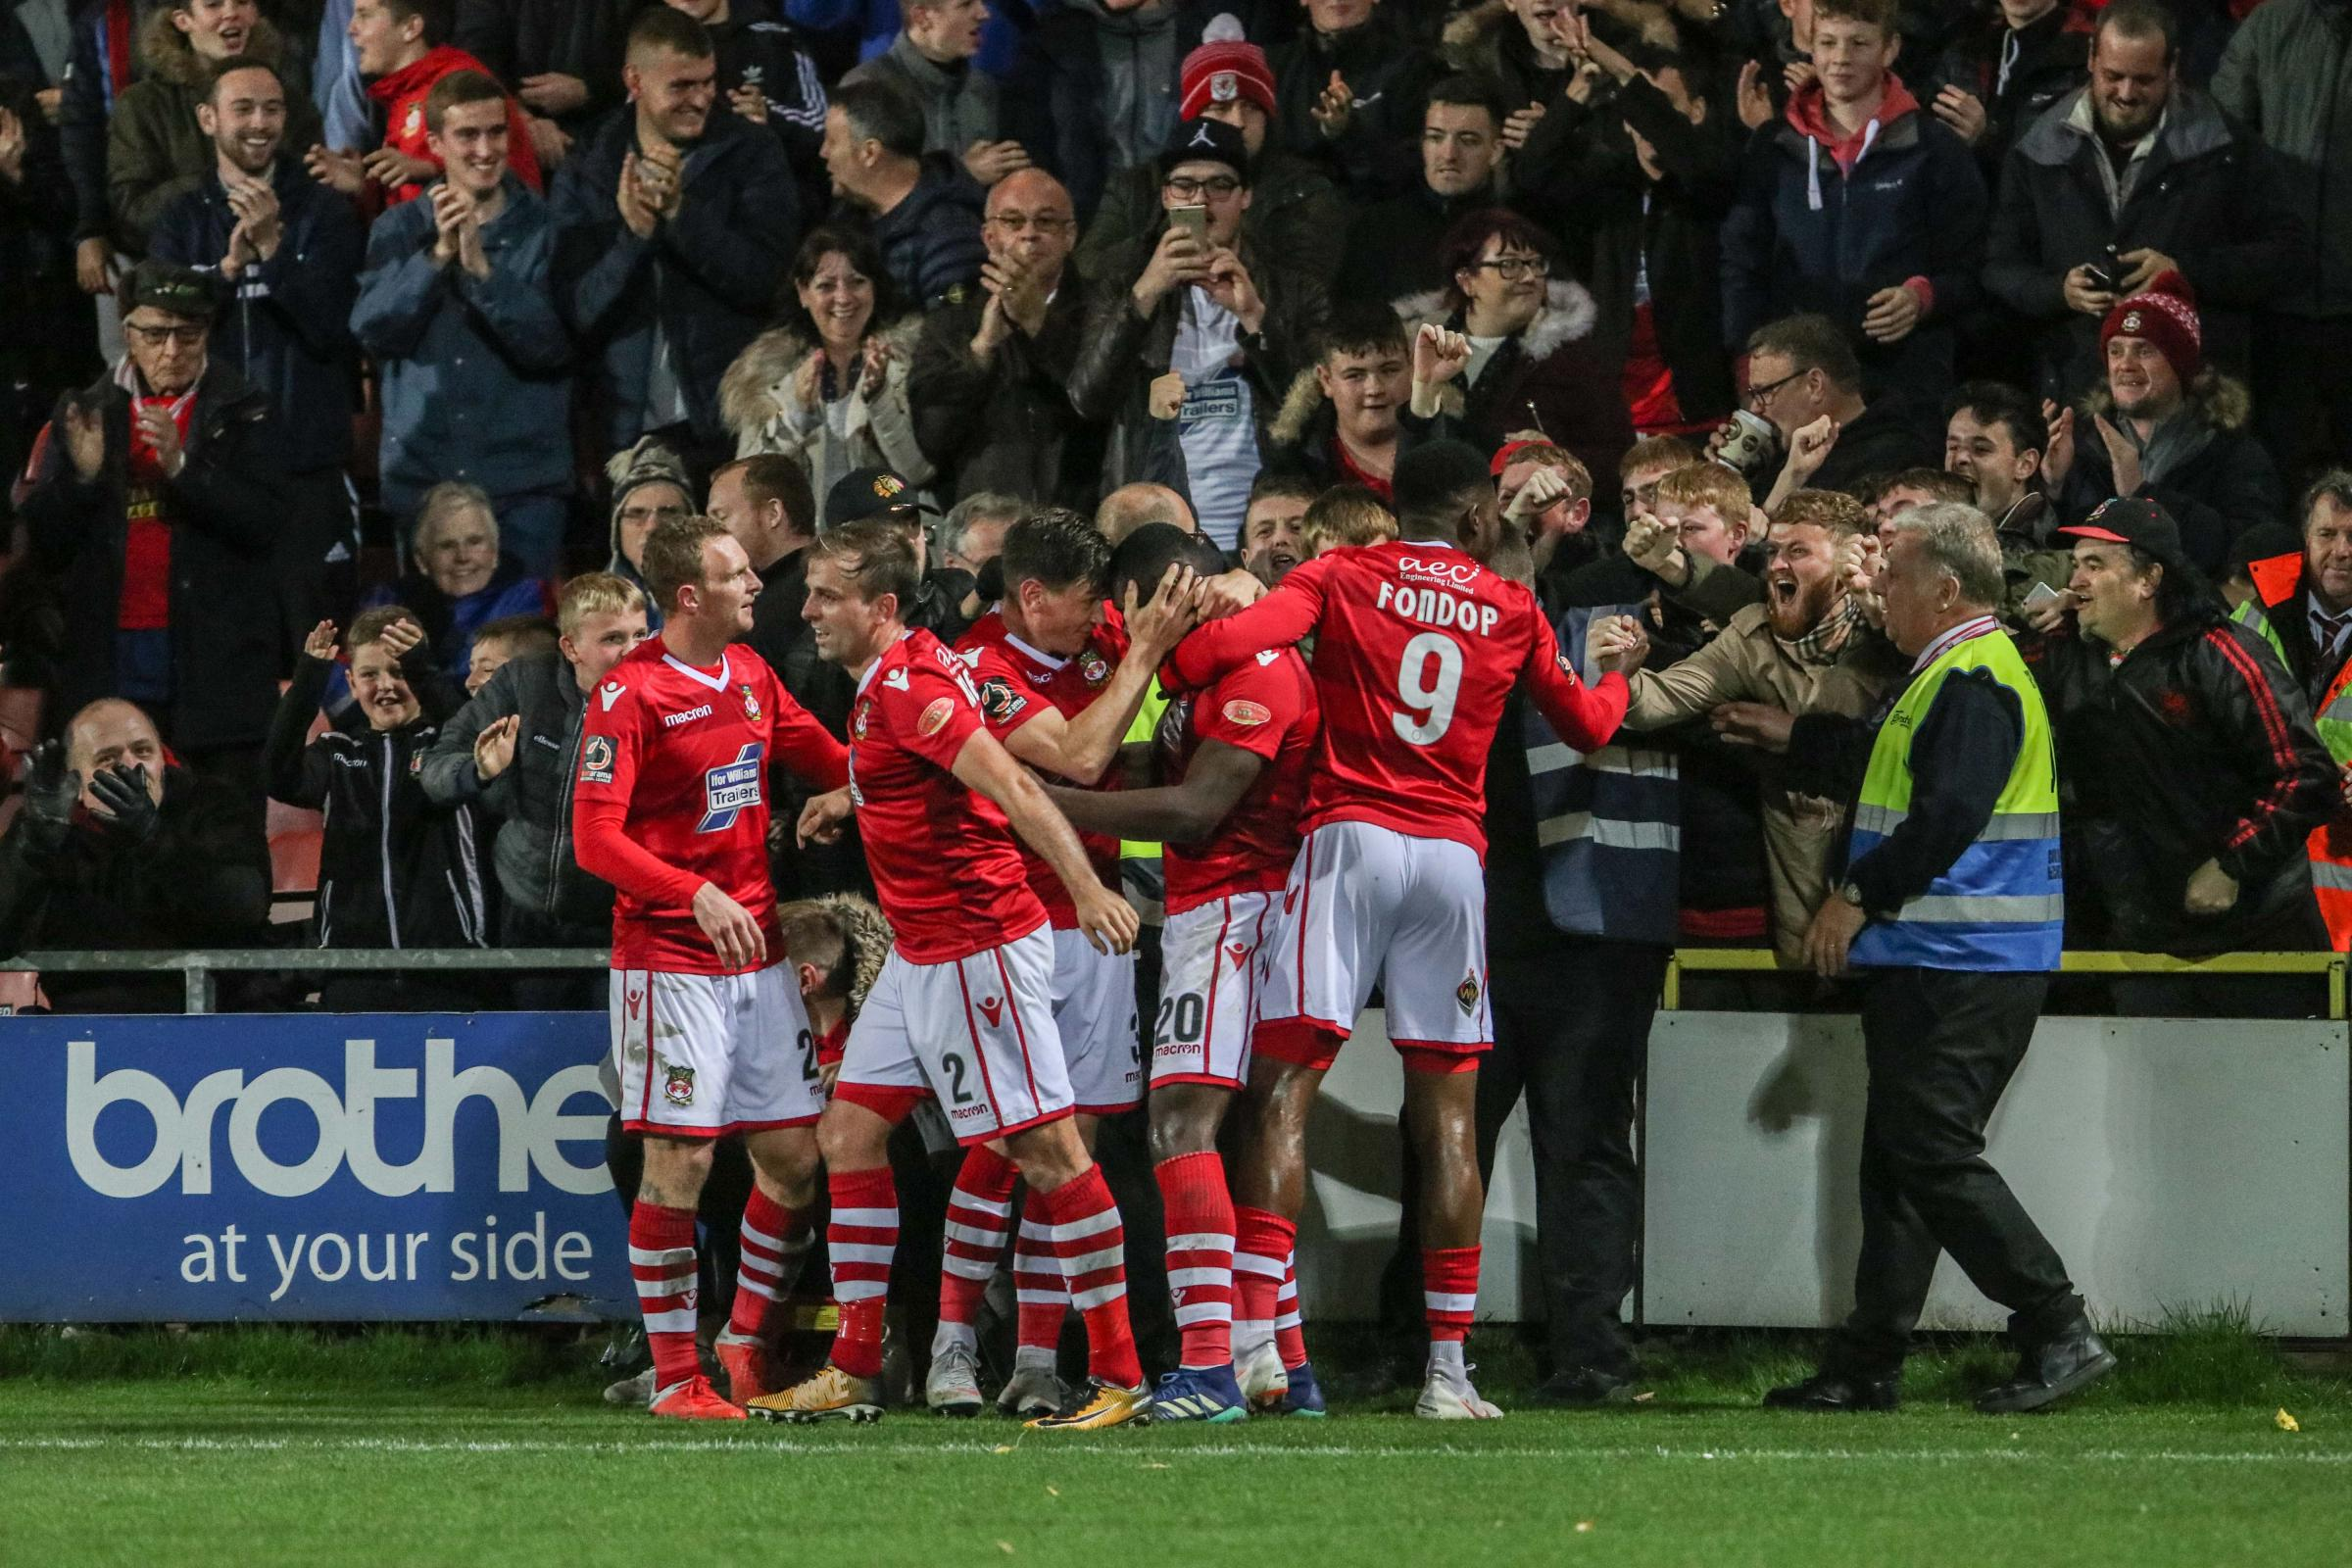 Vote for your Wrexham AFC 2018/19 player of the season